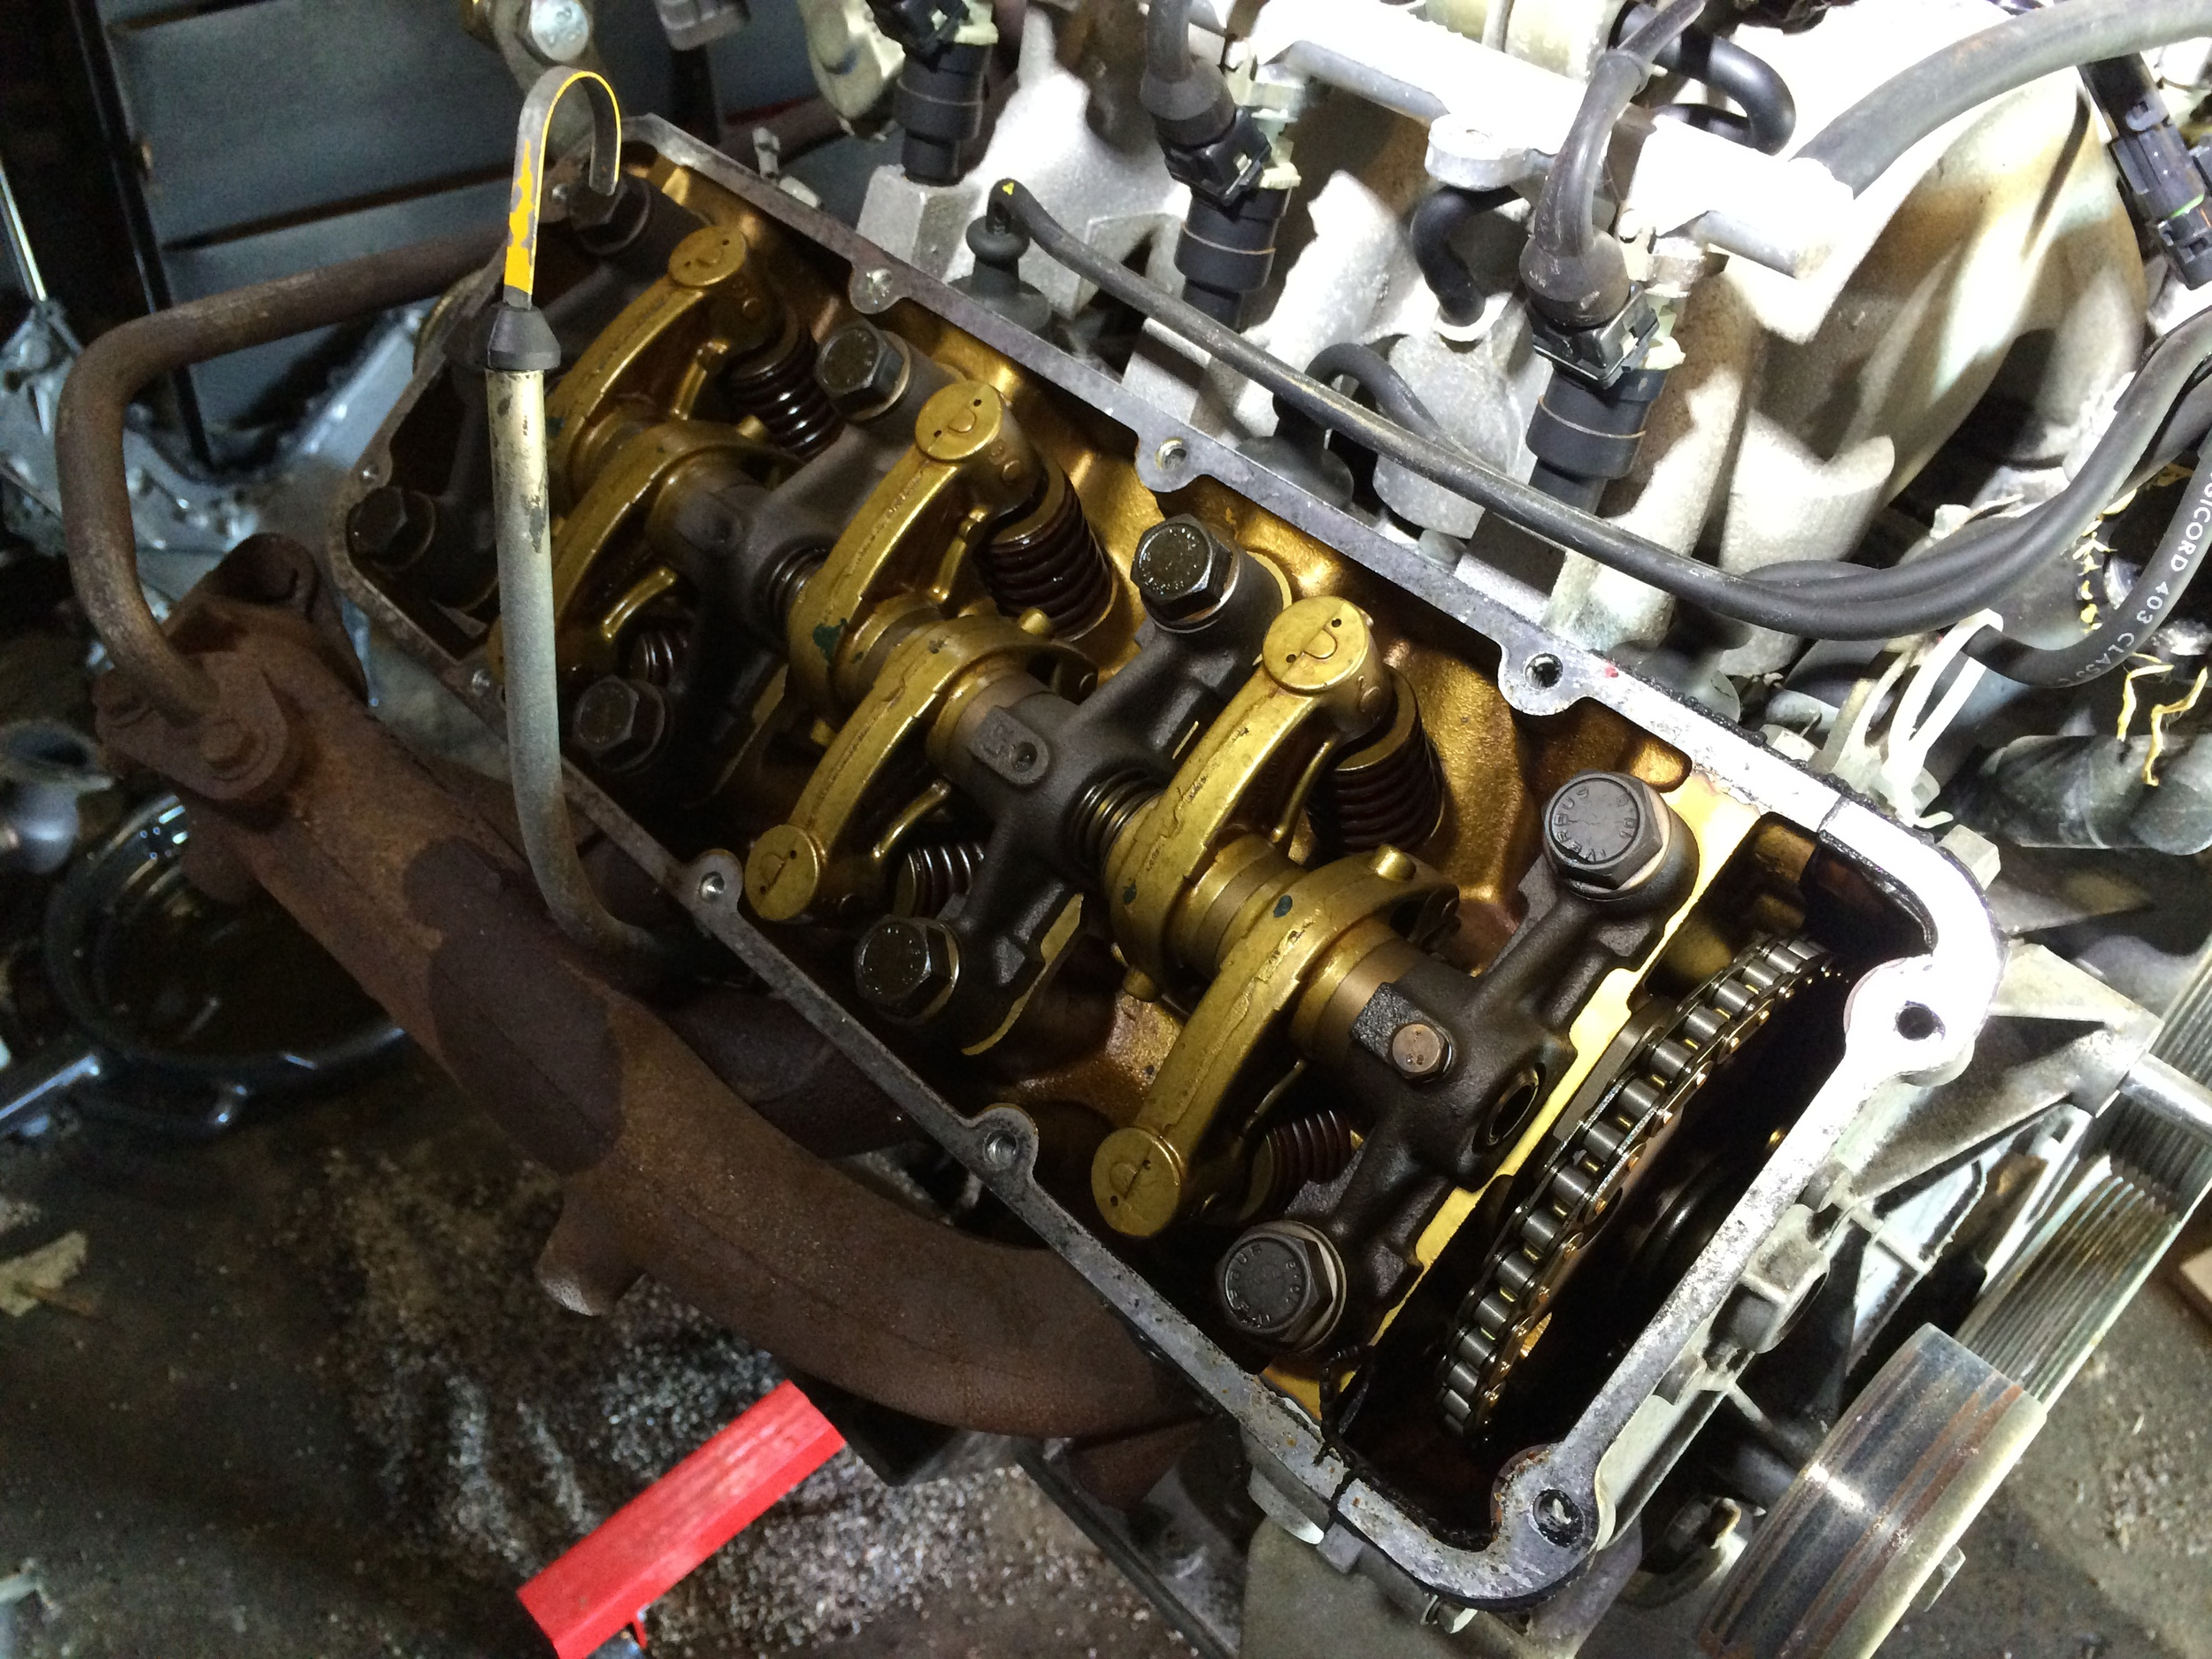 The valve train is revealed once the cylinder heads are removed. The rocker arms have a golden color, while the 2.8L engine has black rocker arms.